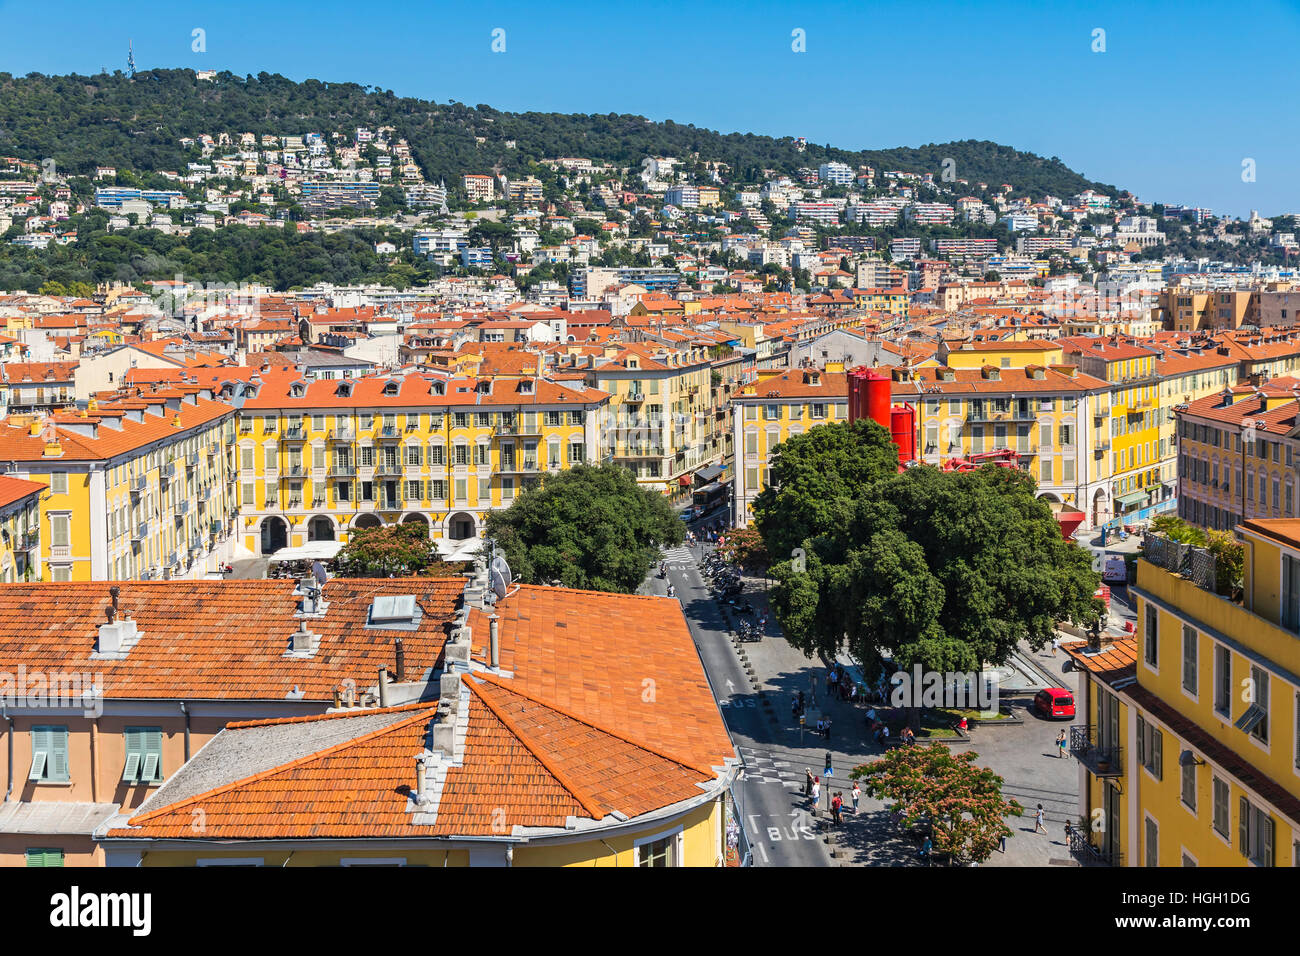 Aerial view of colorful historical houses in City of Nice. Nice - luxury resort of French Riviera, France Stock Photo